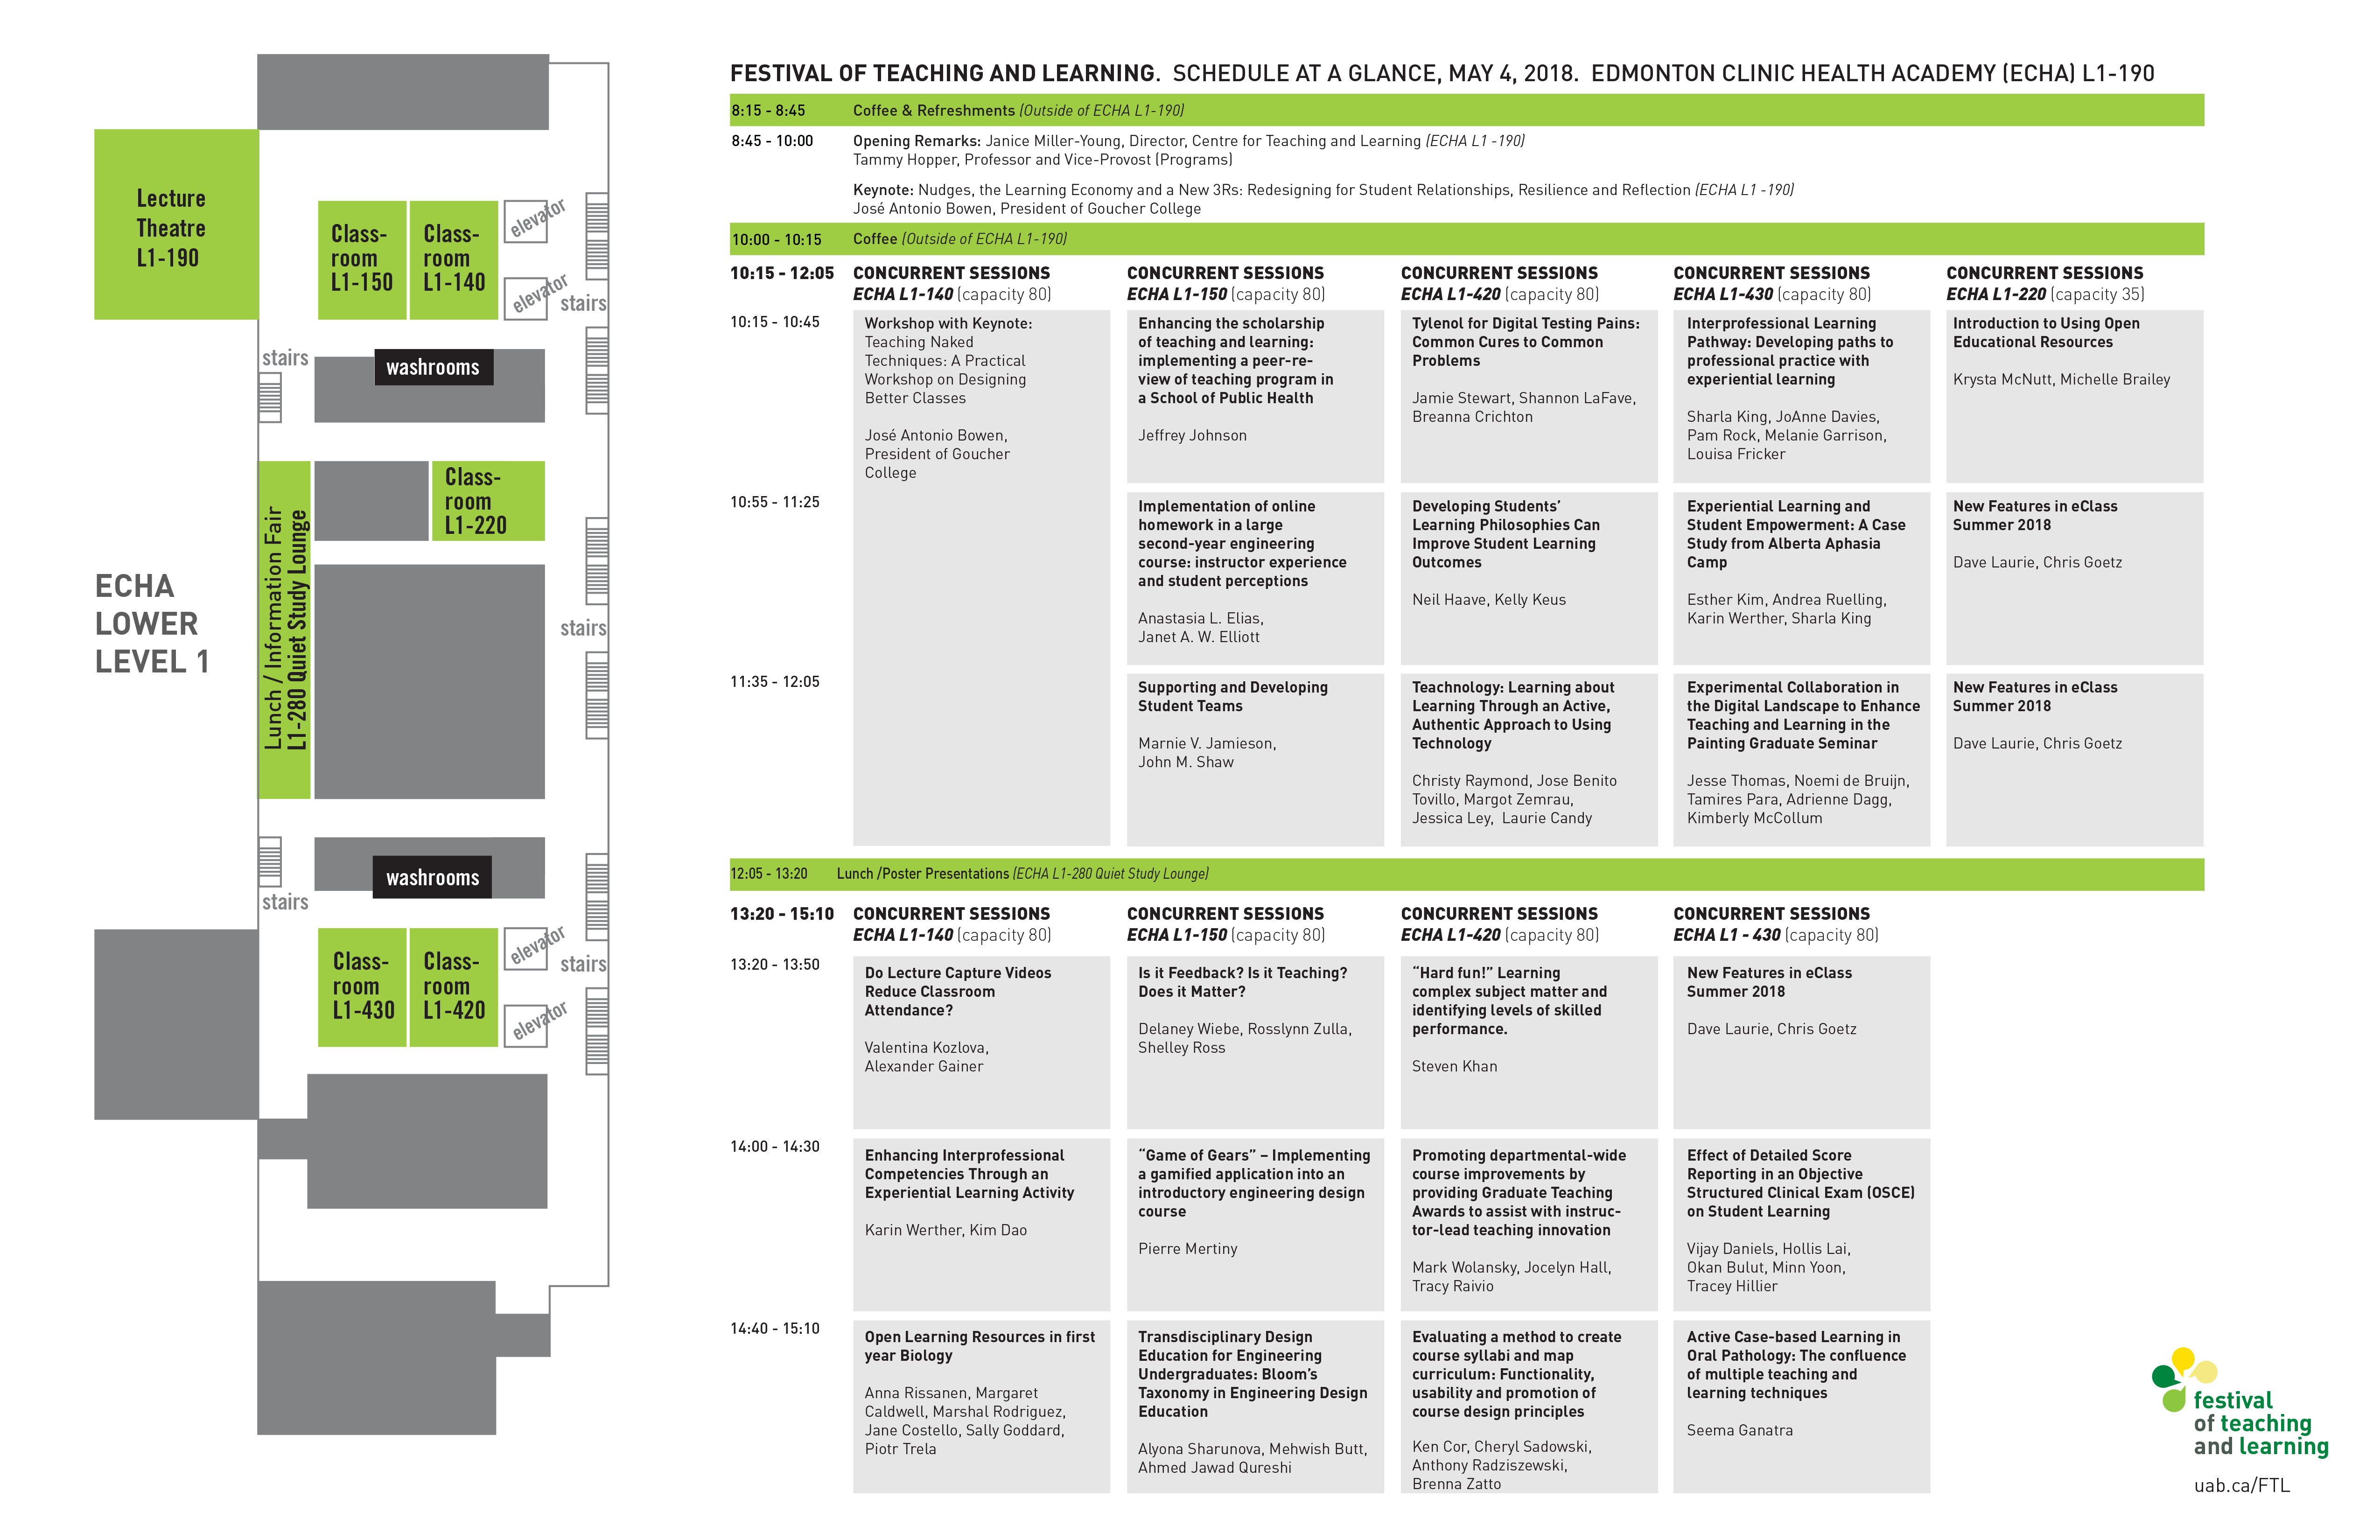 Festival of Teaching and Learning 2018 schedule